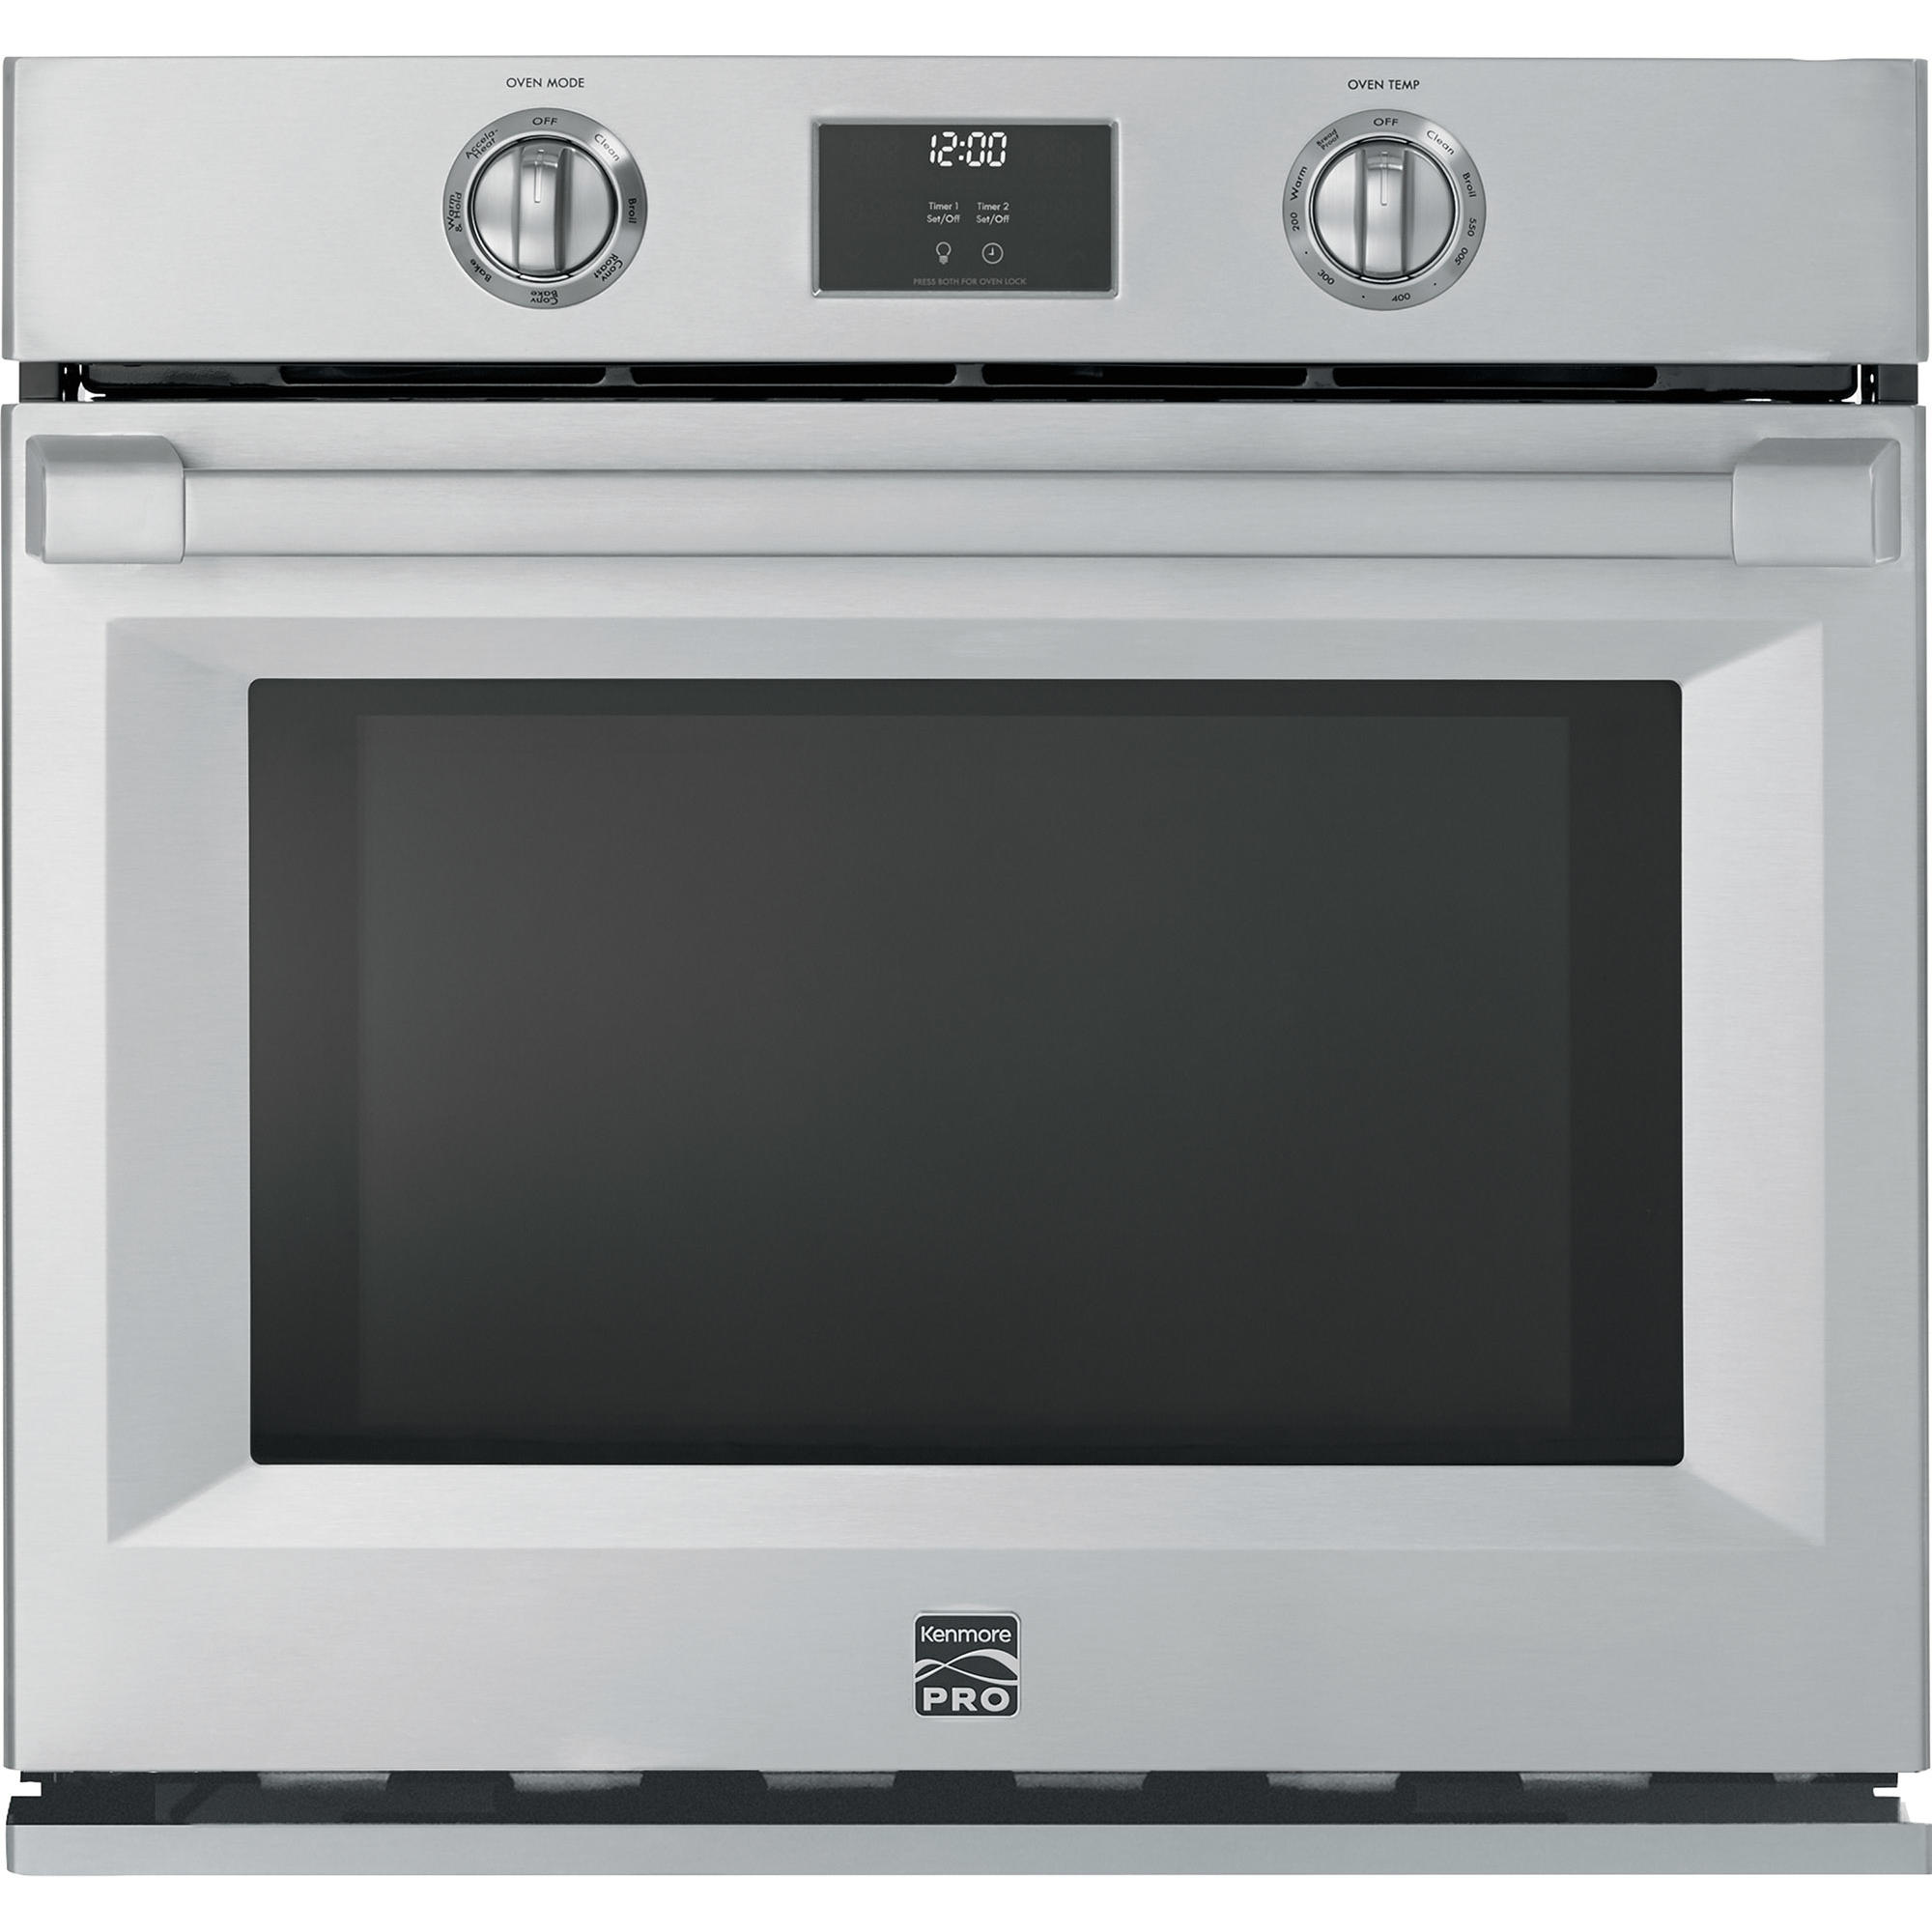 hight resolution of kenmore pro 41153 30 electric self clean single wall oven rh sears com kenmore wall oven kenmore wall oven control board wiring diagram